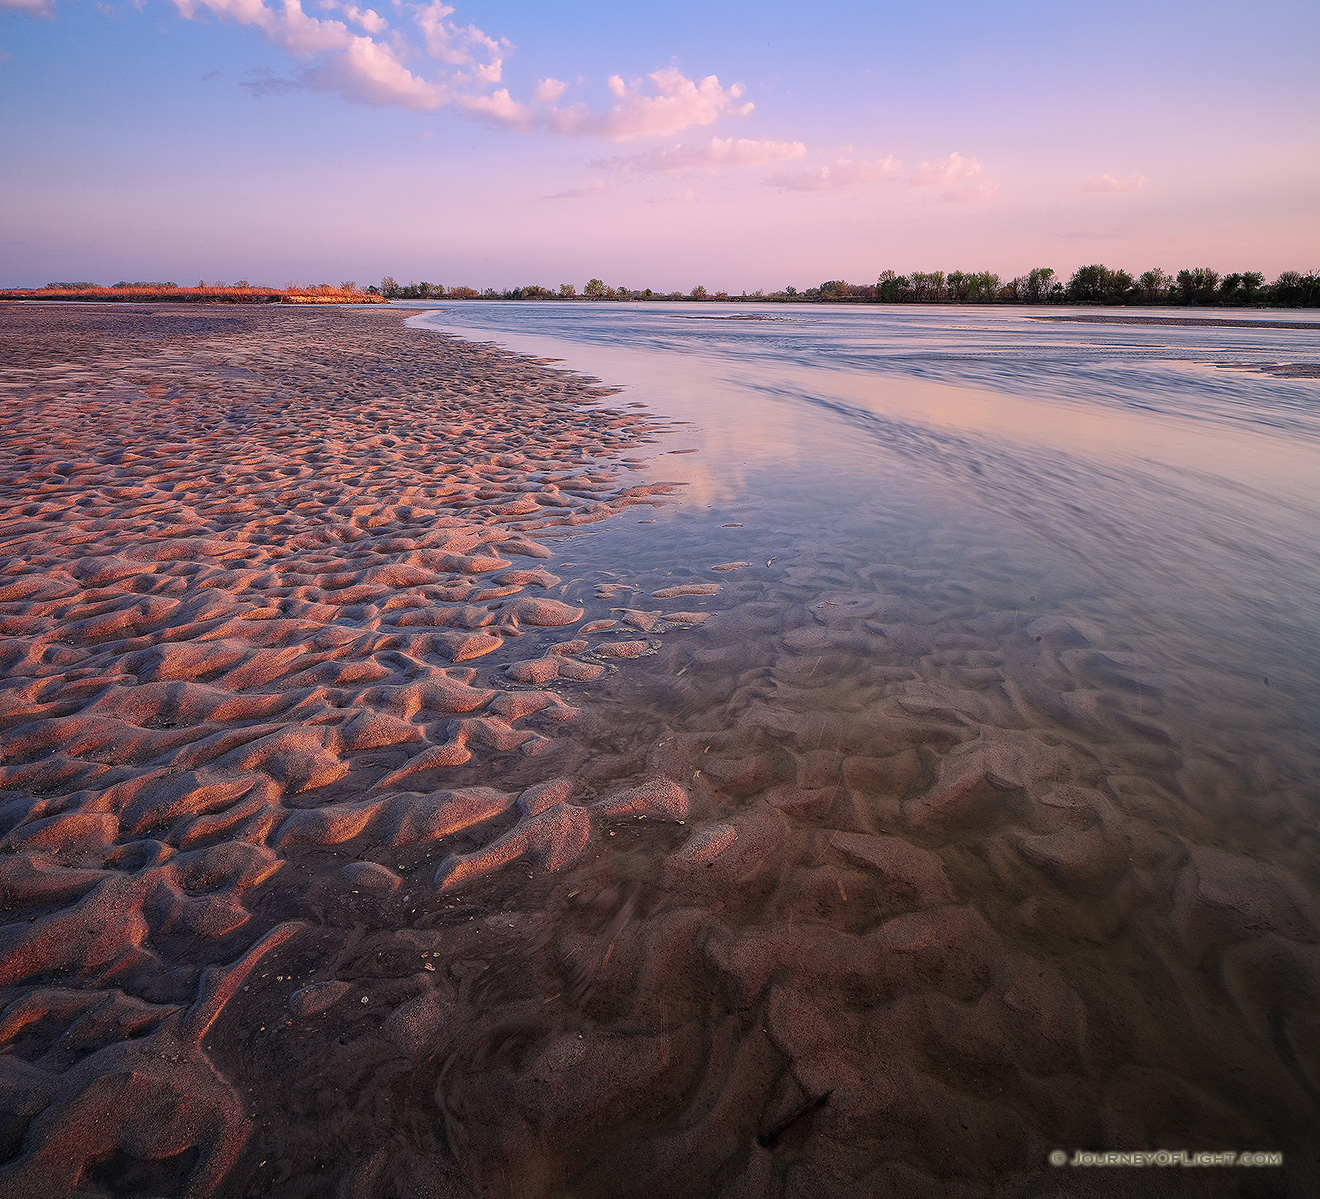 On a sandbar near Two Rivers State Recreation Area, the Platte River flows into the distance as the sun sets to the west. - Nebraska Picture